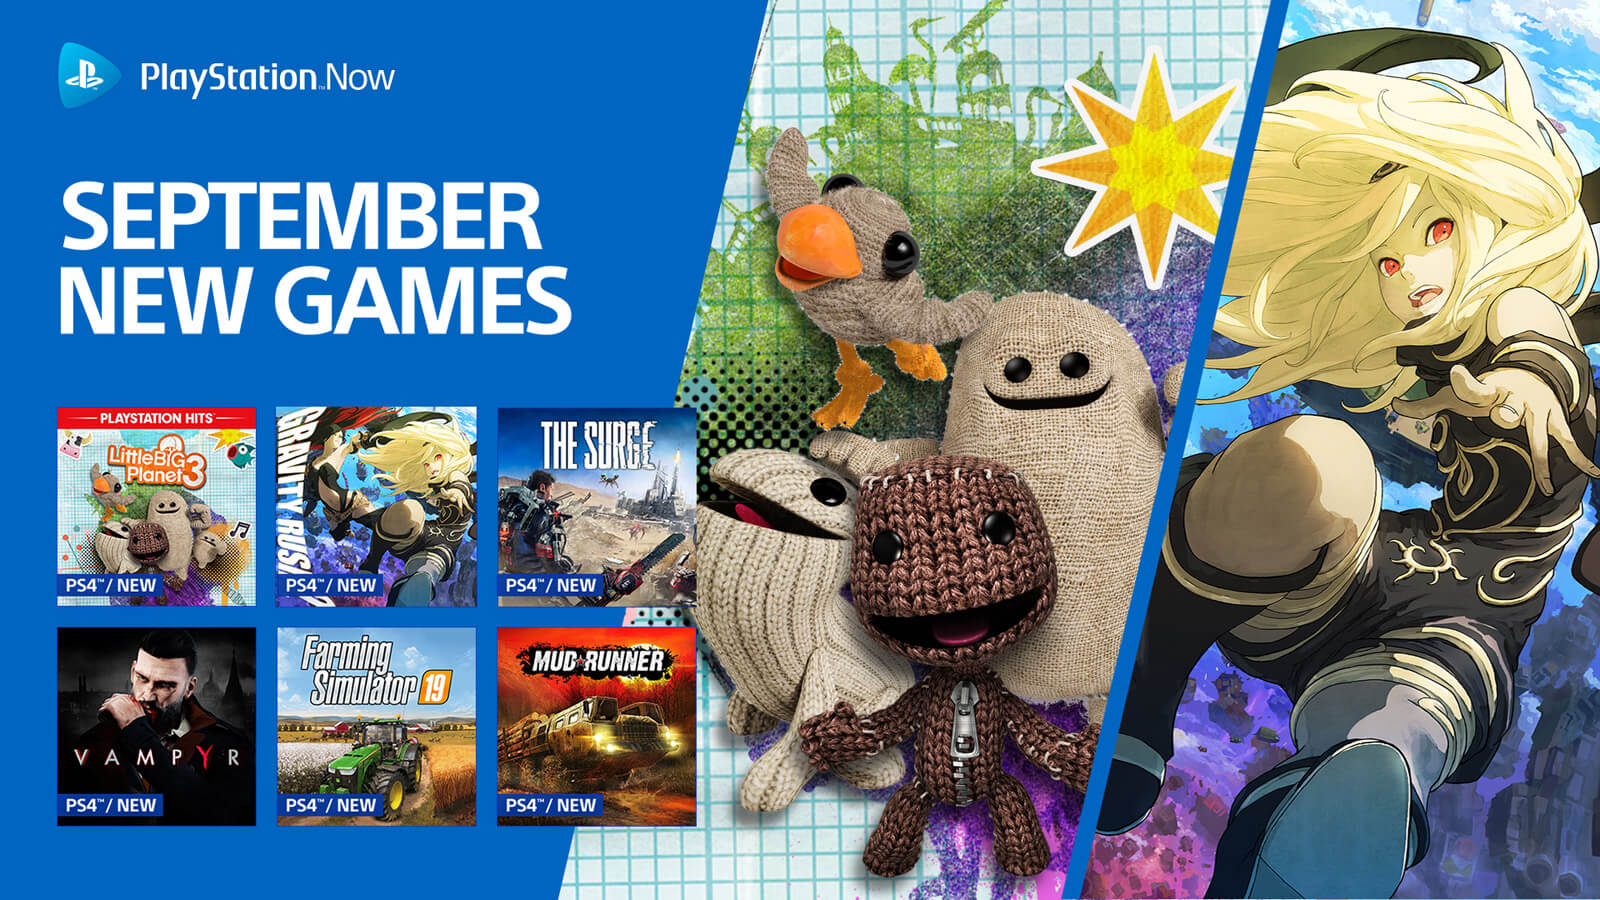 PlayStation Now Adds LittleBigPlanet 3, Gravity Rush 2 and